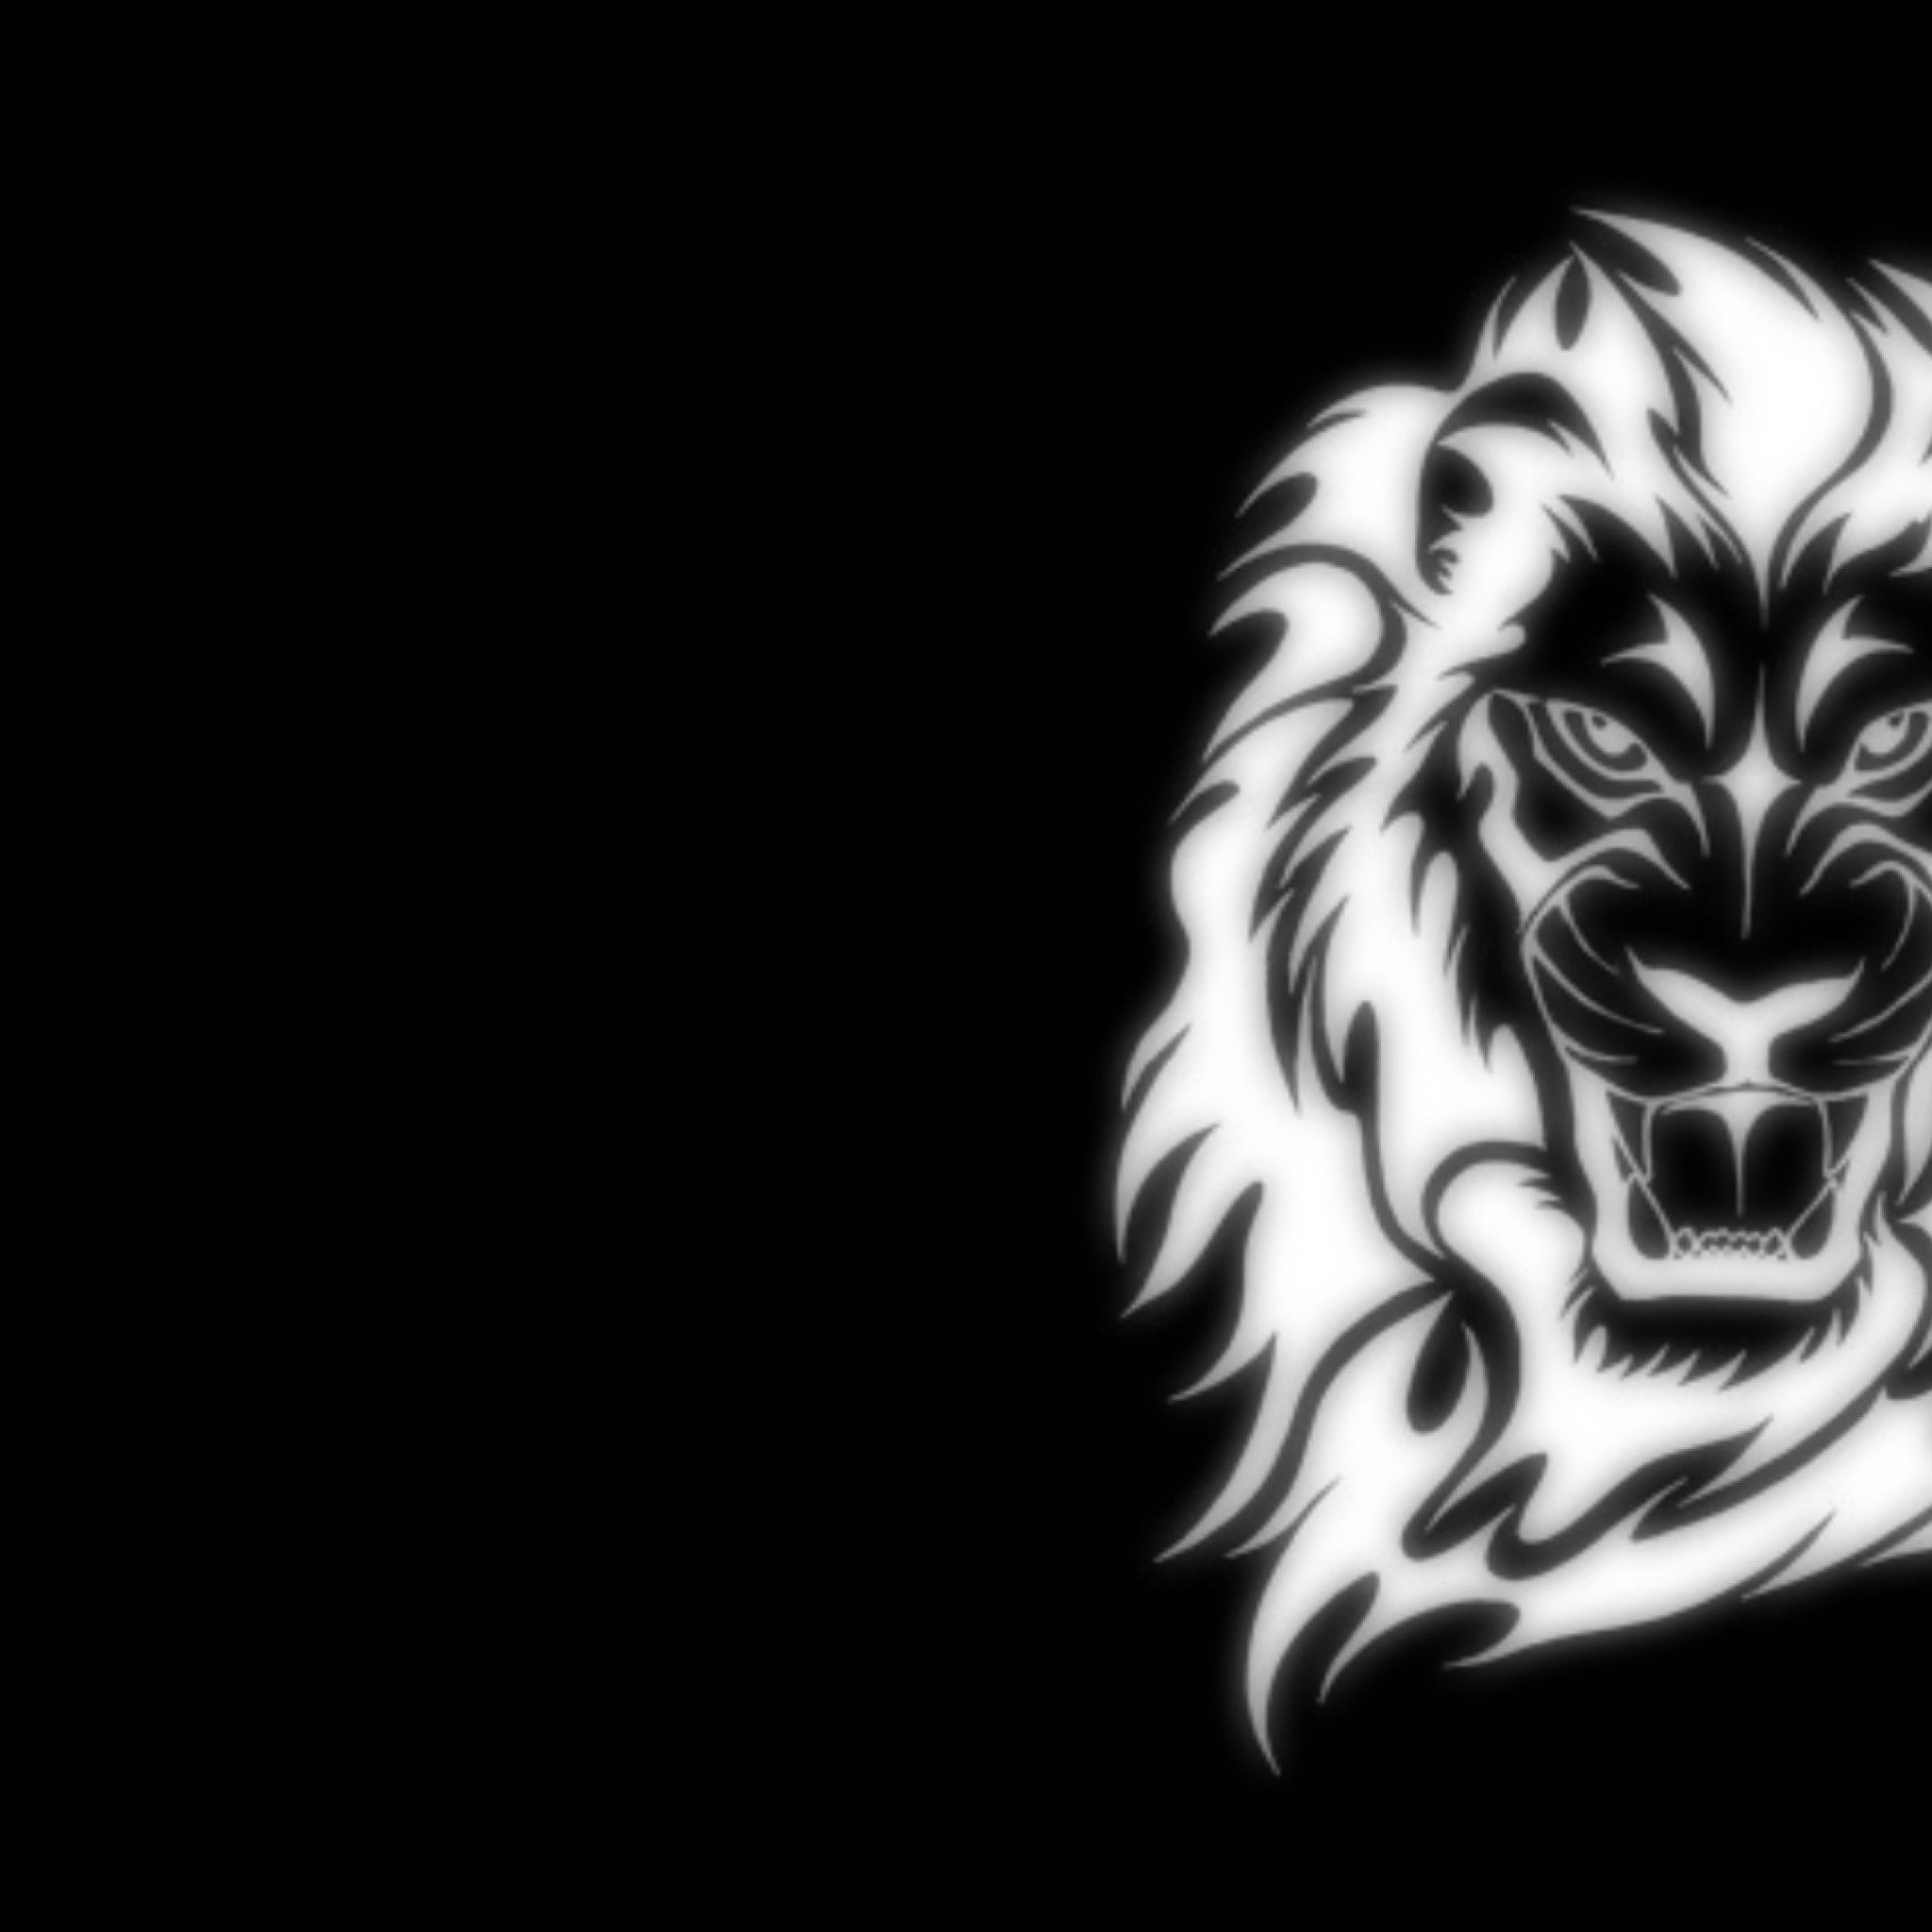 Black And White Lion Hd Wallpaper - Central Valley Lions , HD Wallpaper & Backgrounds